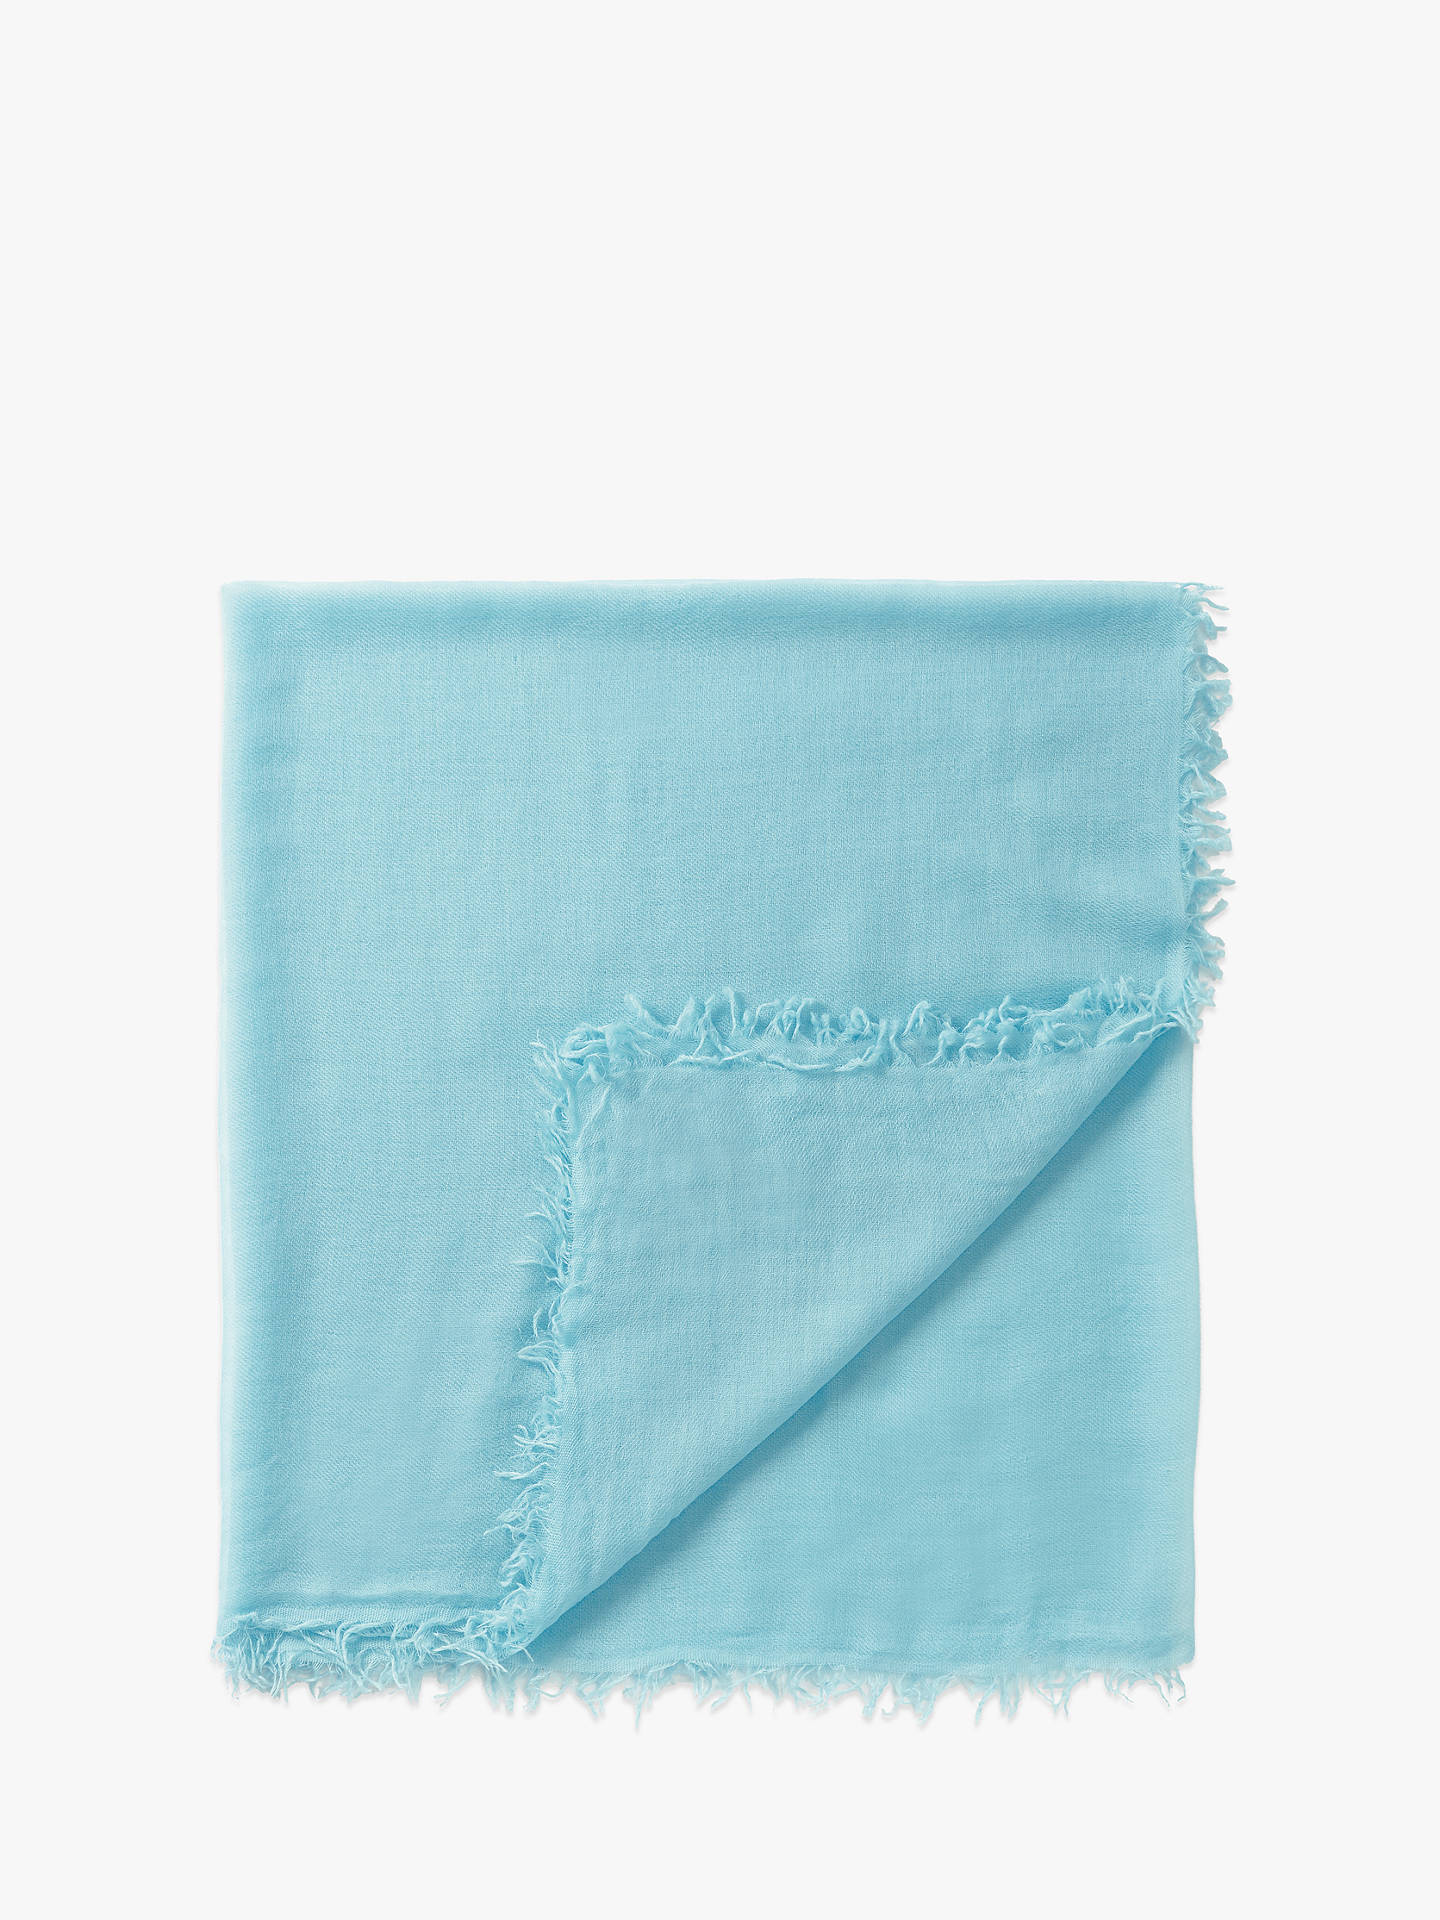 BuyPure Collection Gauzy Frayed Edge Cashmere Scarf, Blue Ocean, One Size Online at johnlewis.com